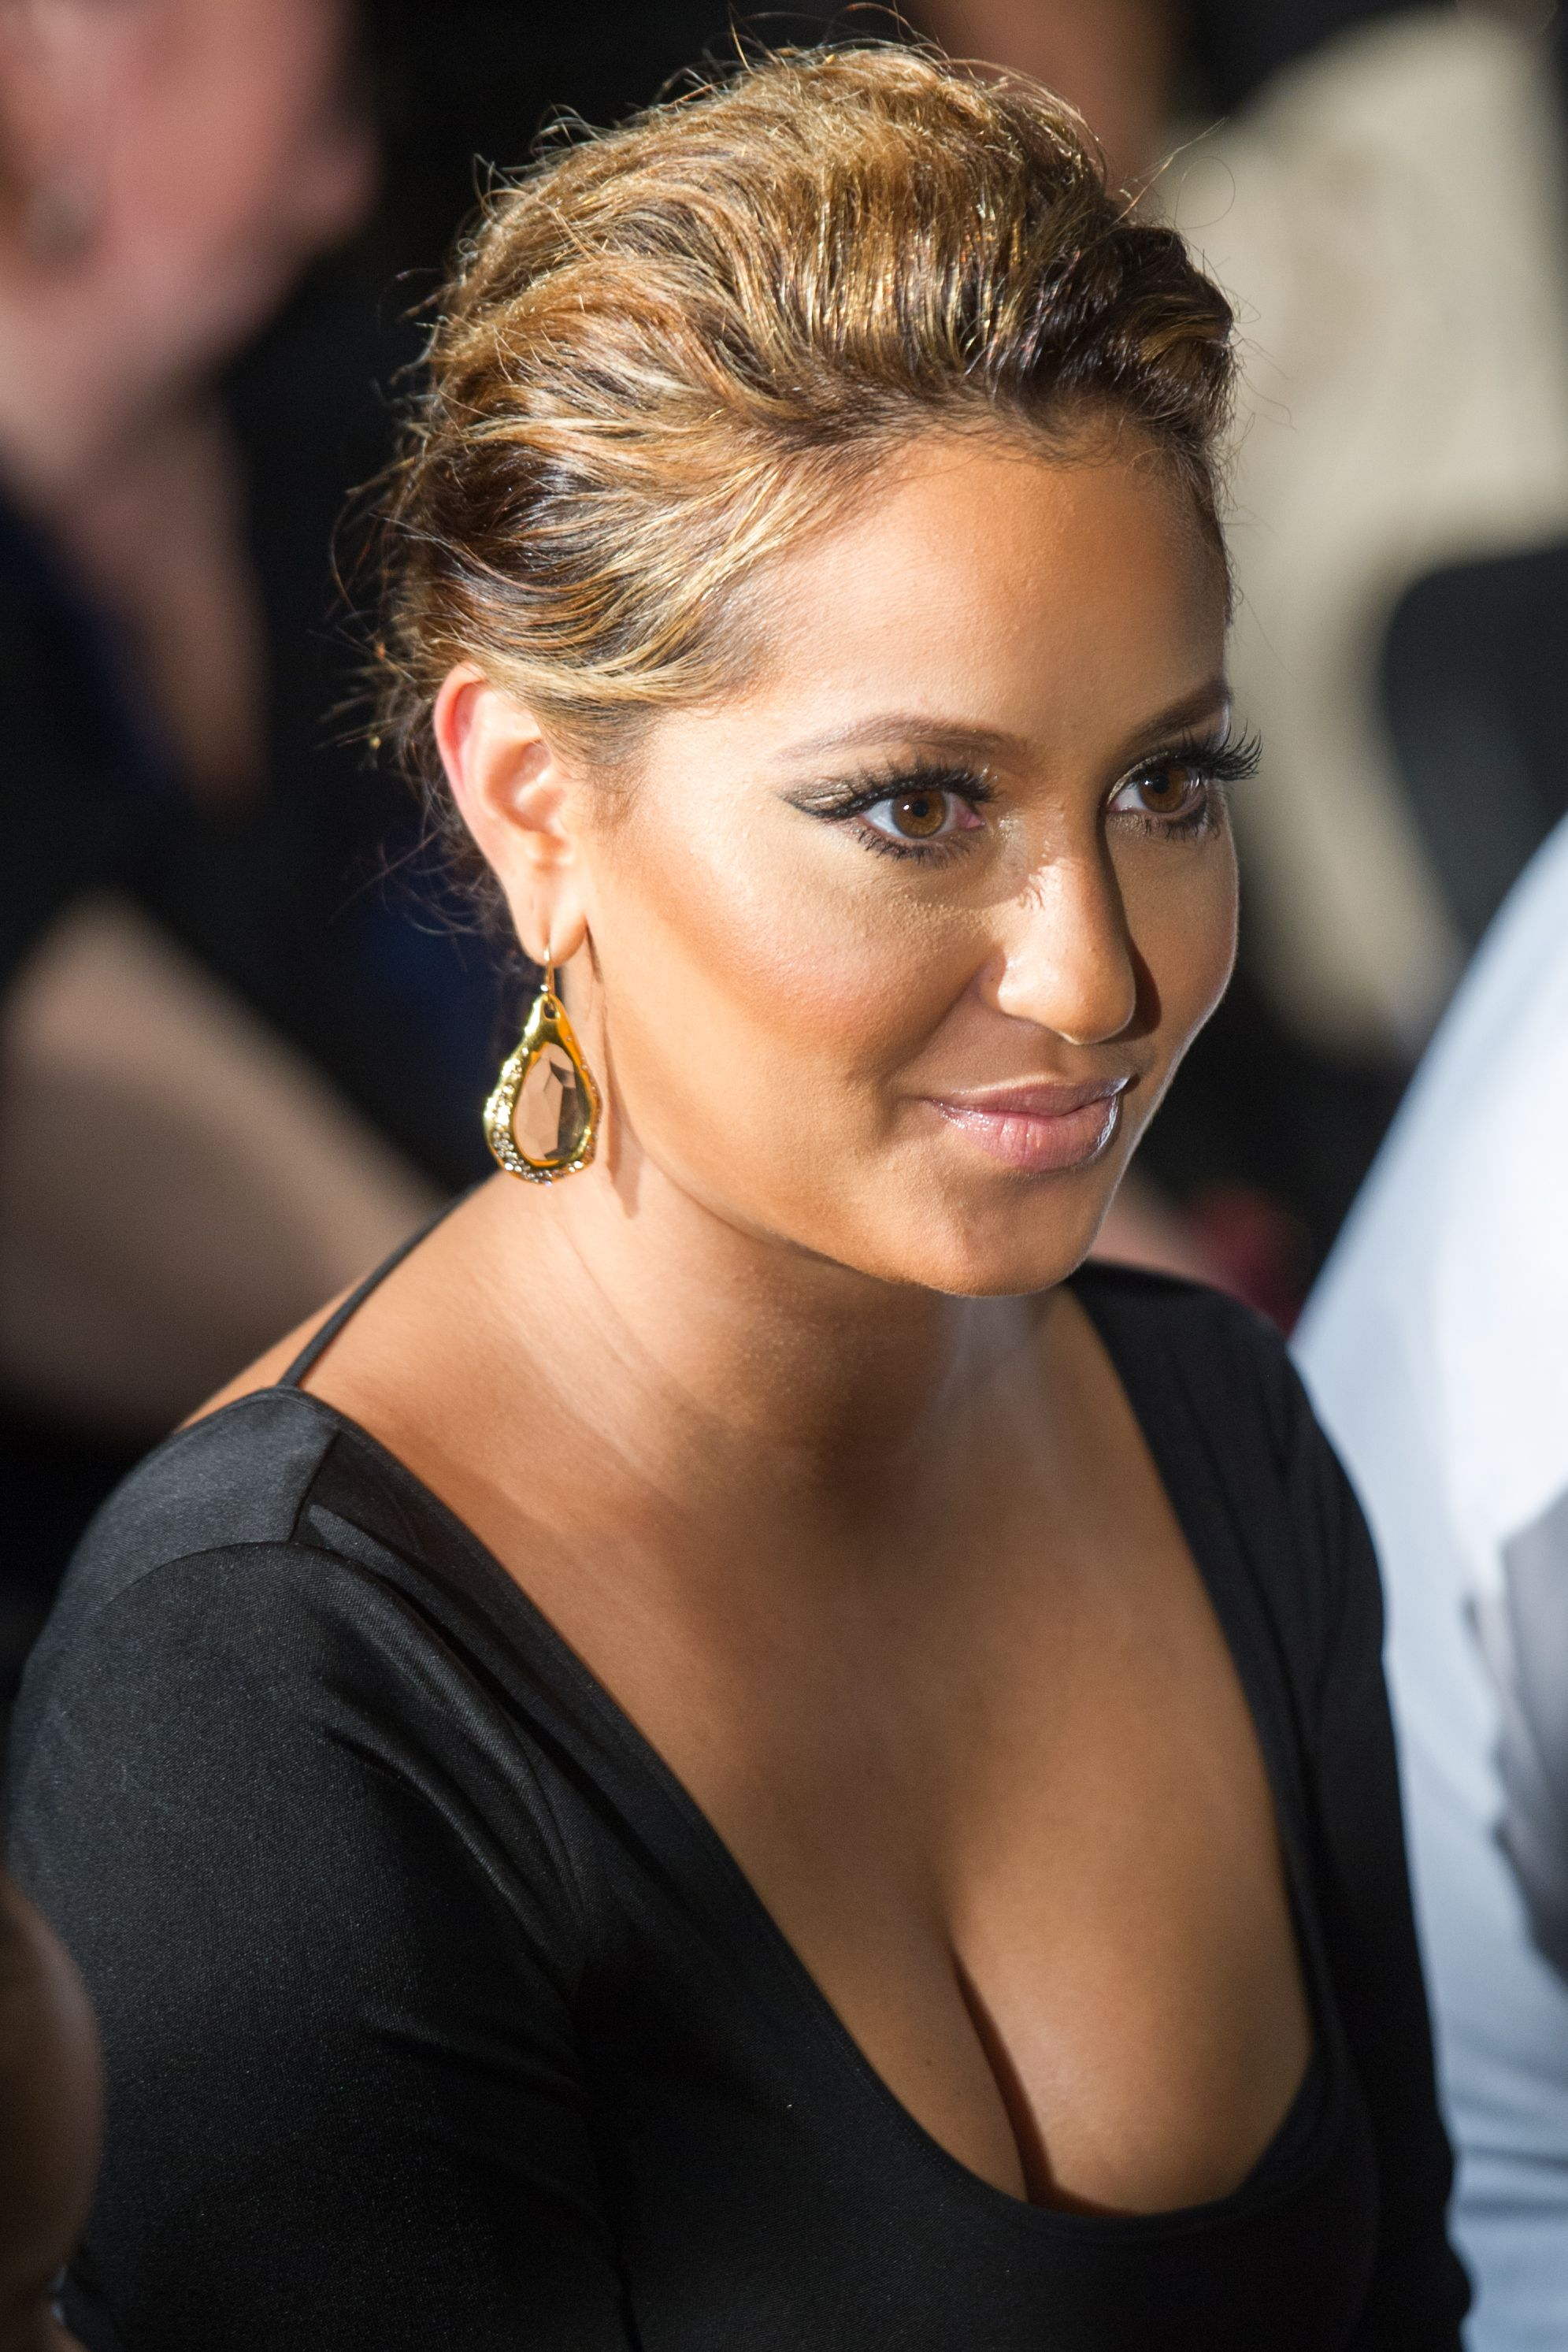 Adrienne Bailon Highline Back To School Teen Fashion Show